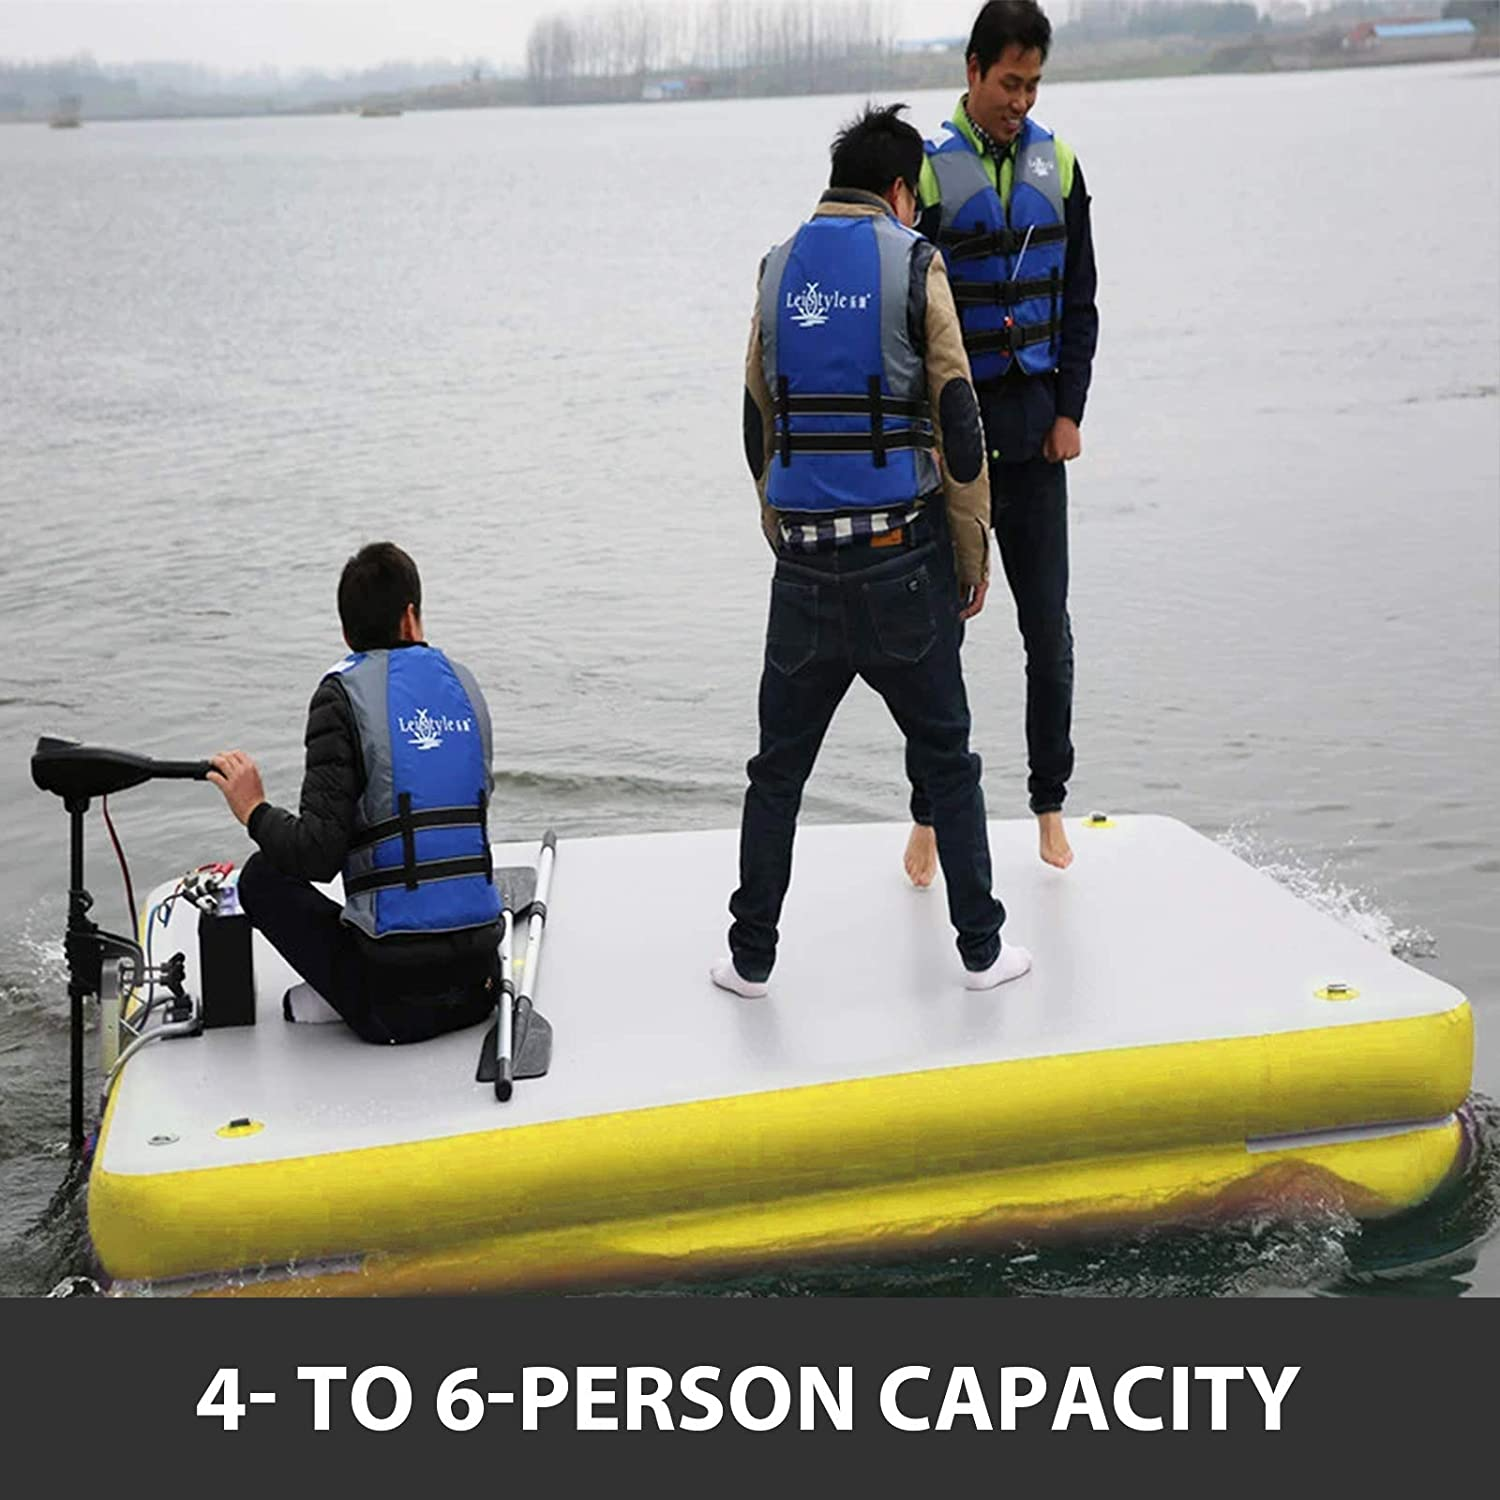 Floating Platform for Pool Beach Ocean Happybuy Inflatable Floating Dock 8/'x 6/'x 6 inches Thick Inflatable Dock Platform 4-6 People